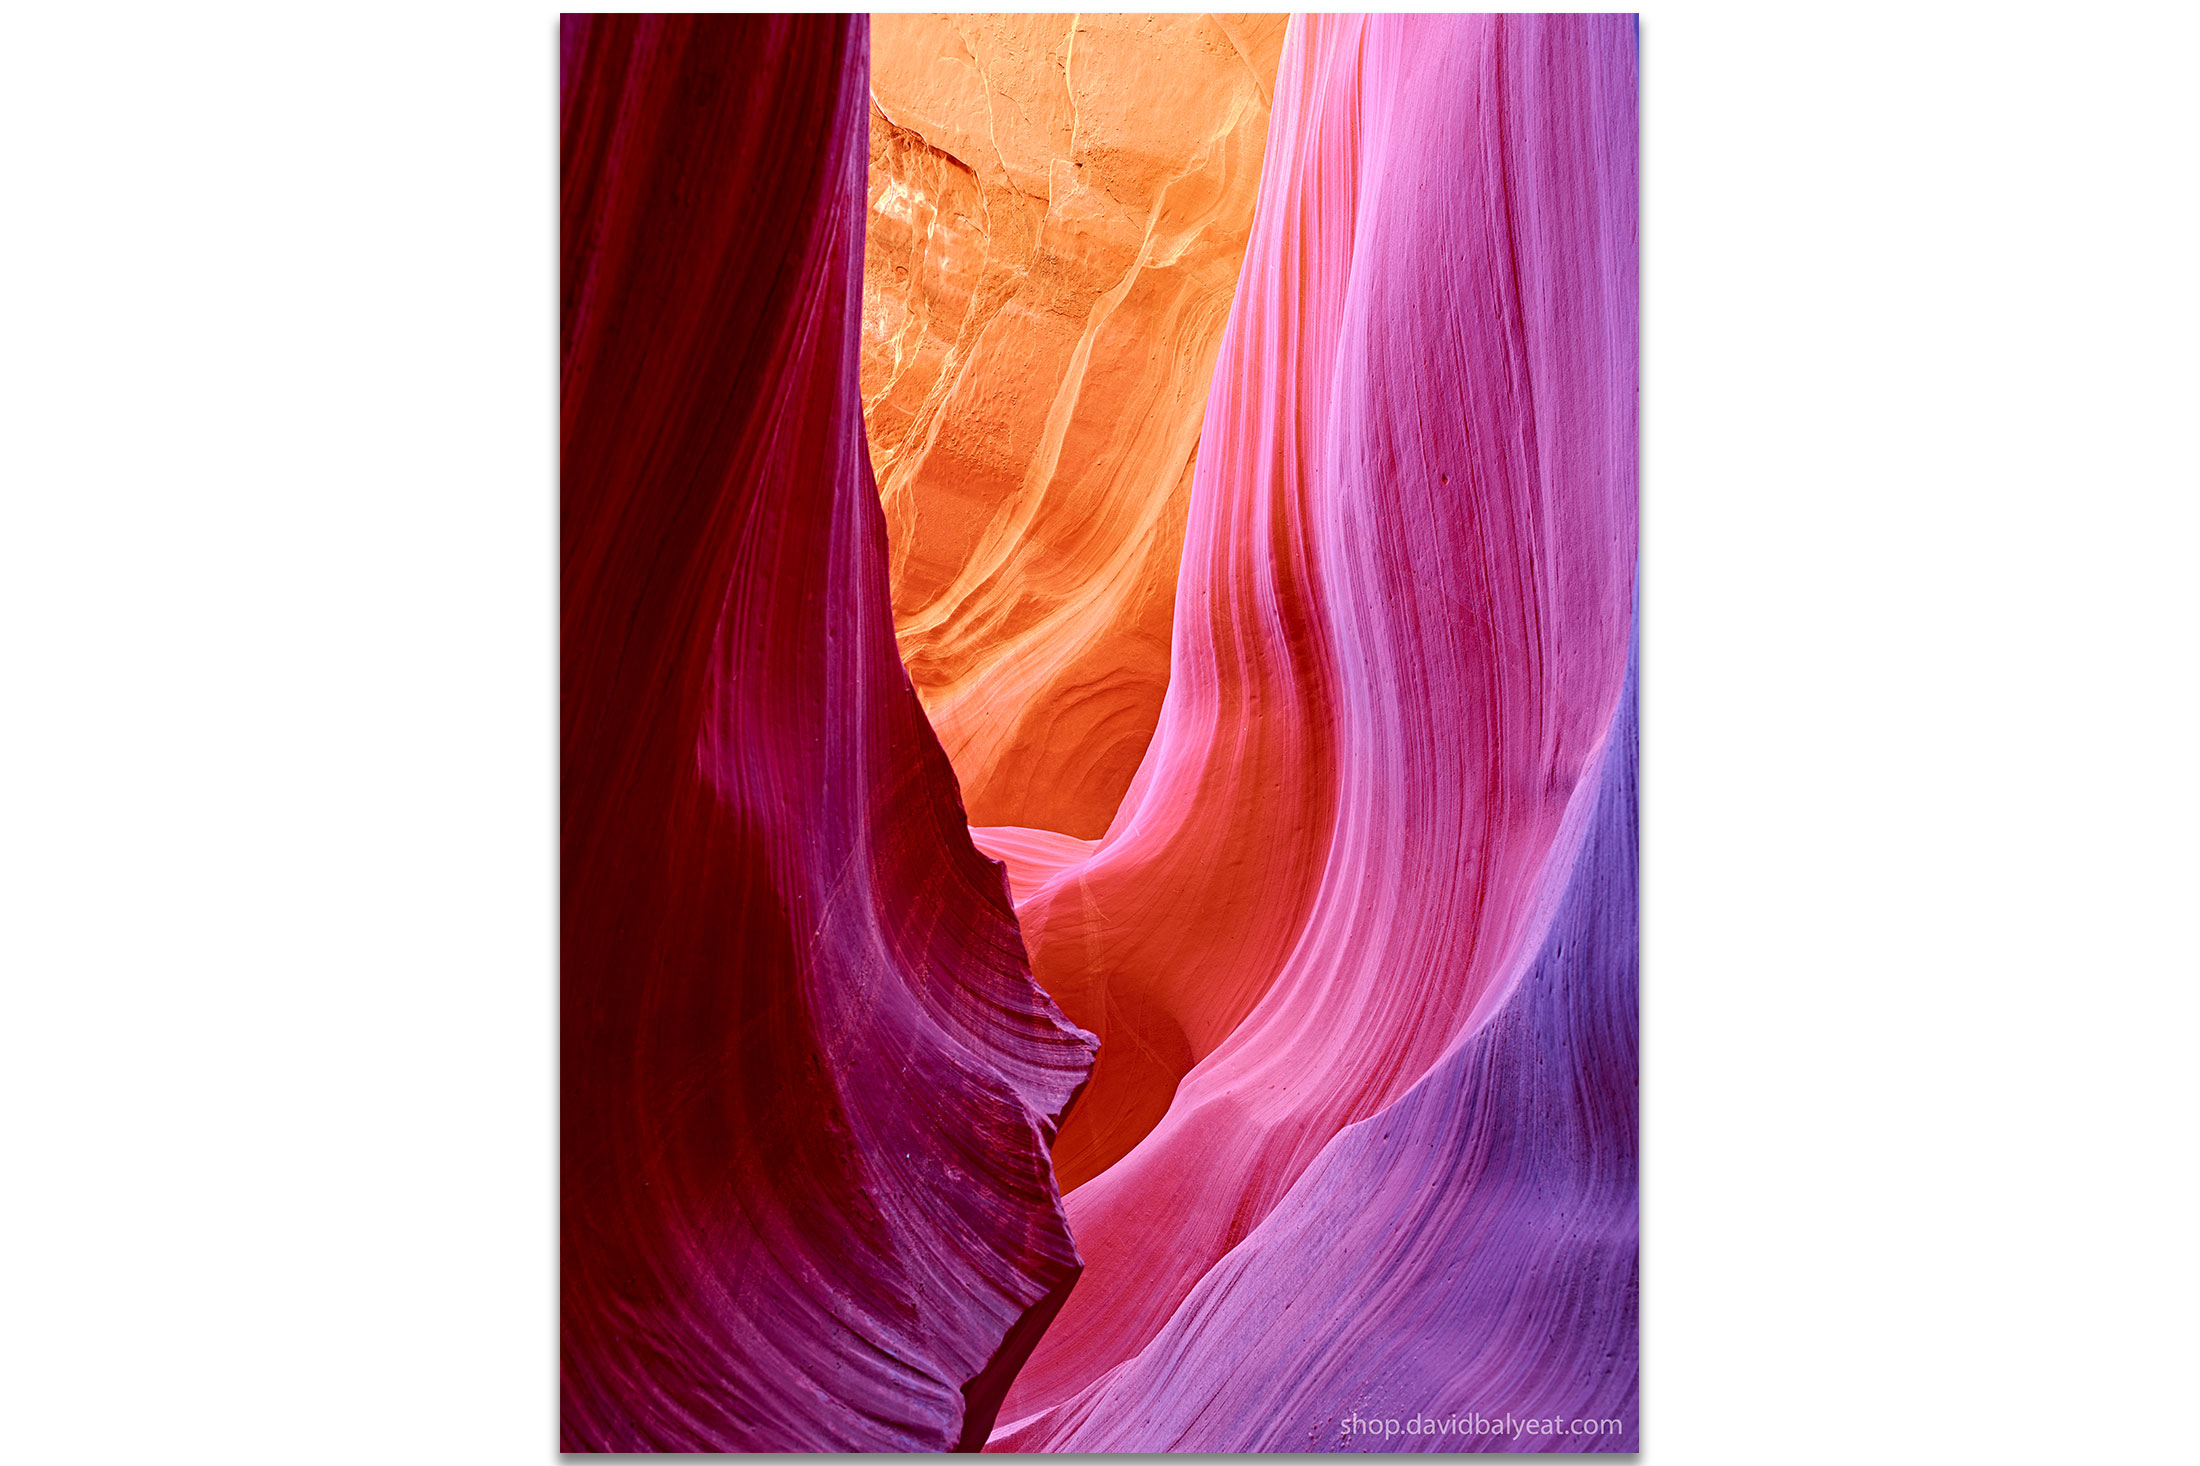 Antelope Canyon Vessel of Light high-definition HD professional landscape photography